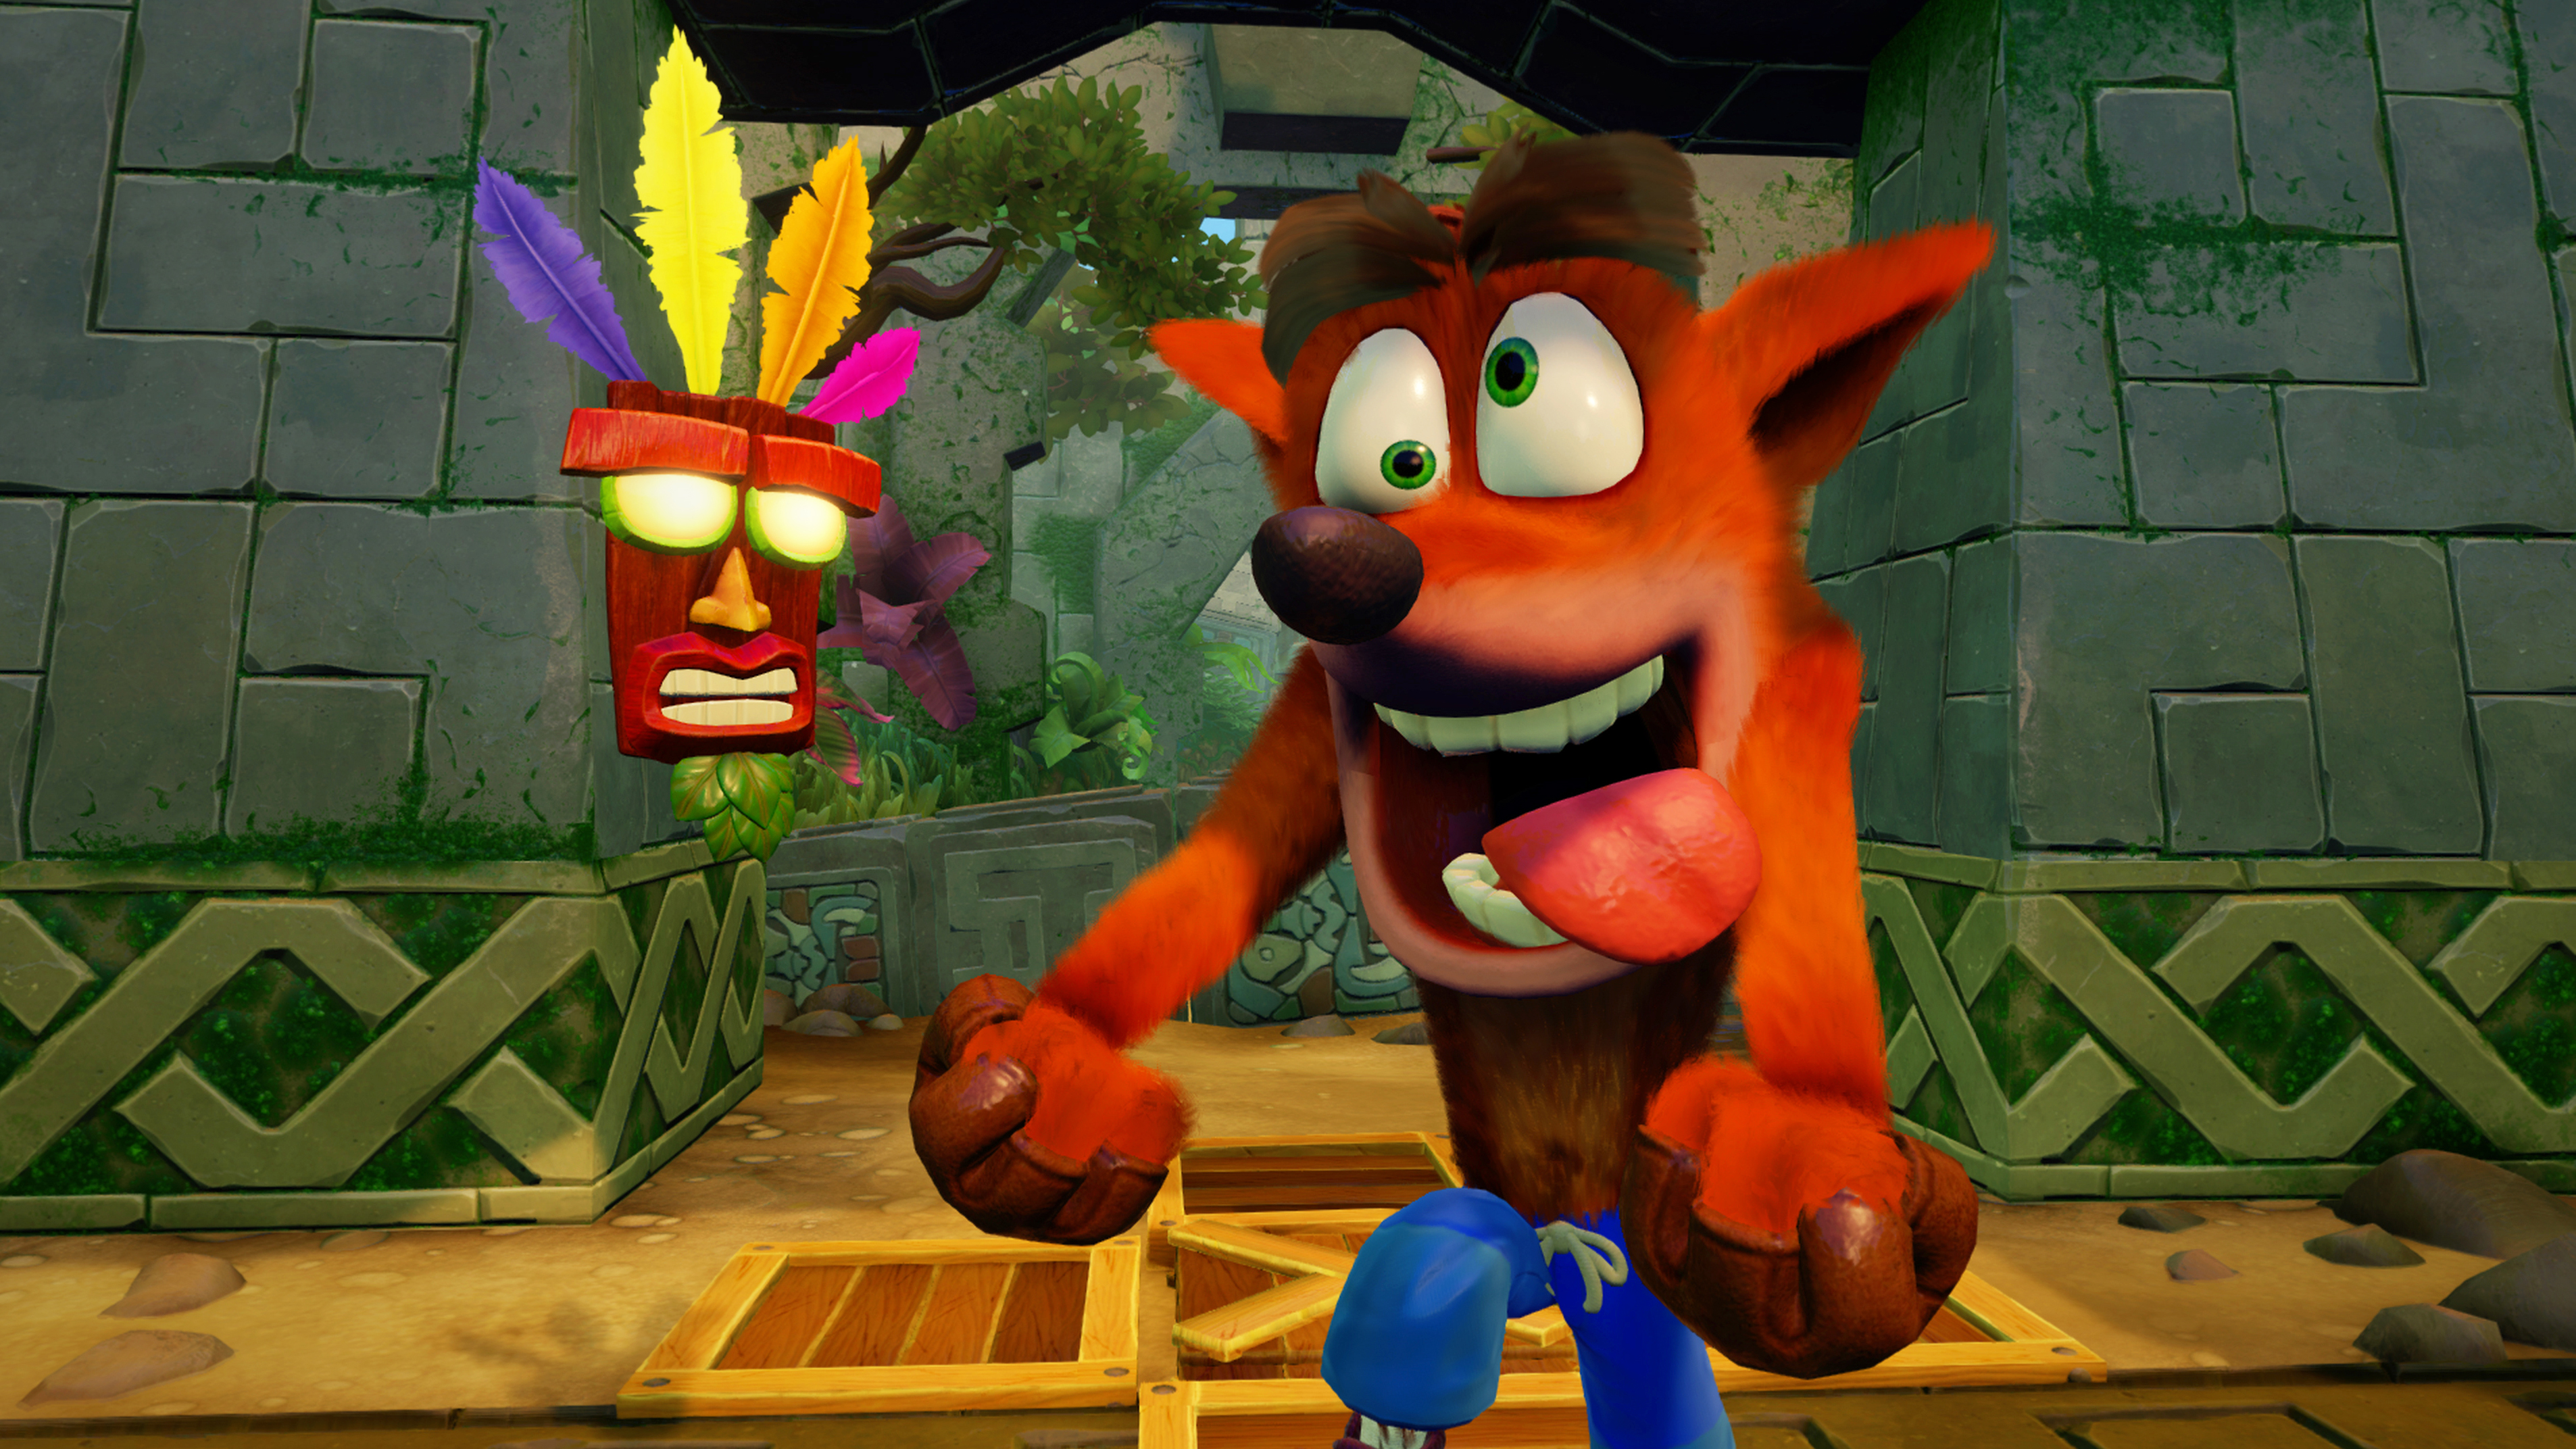 Crash Team Racing Remaster Release Date News And Rumors